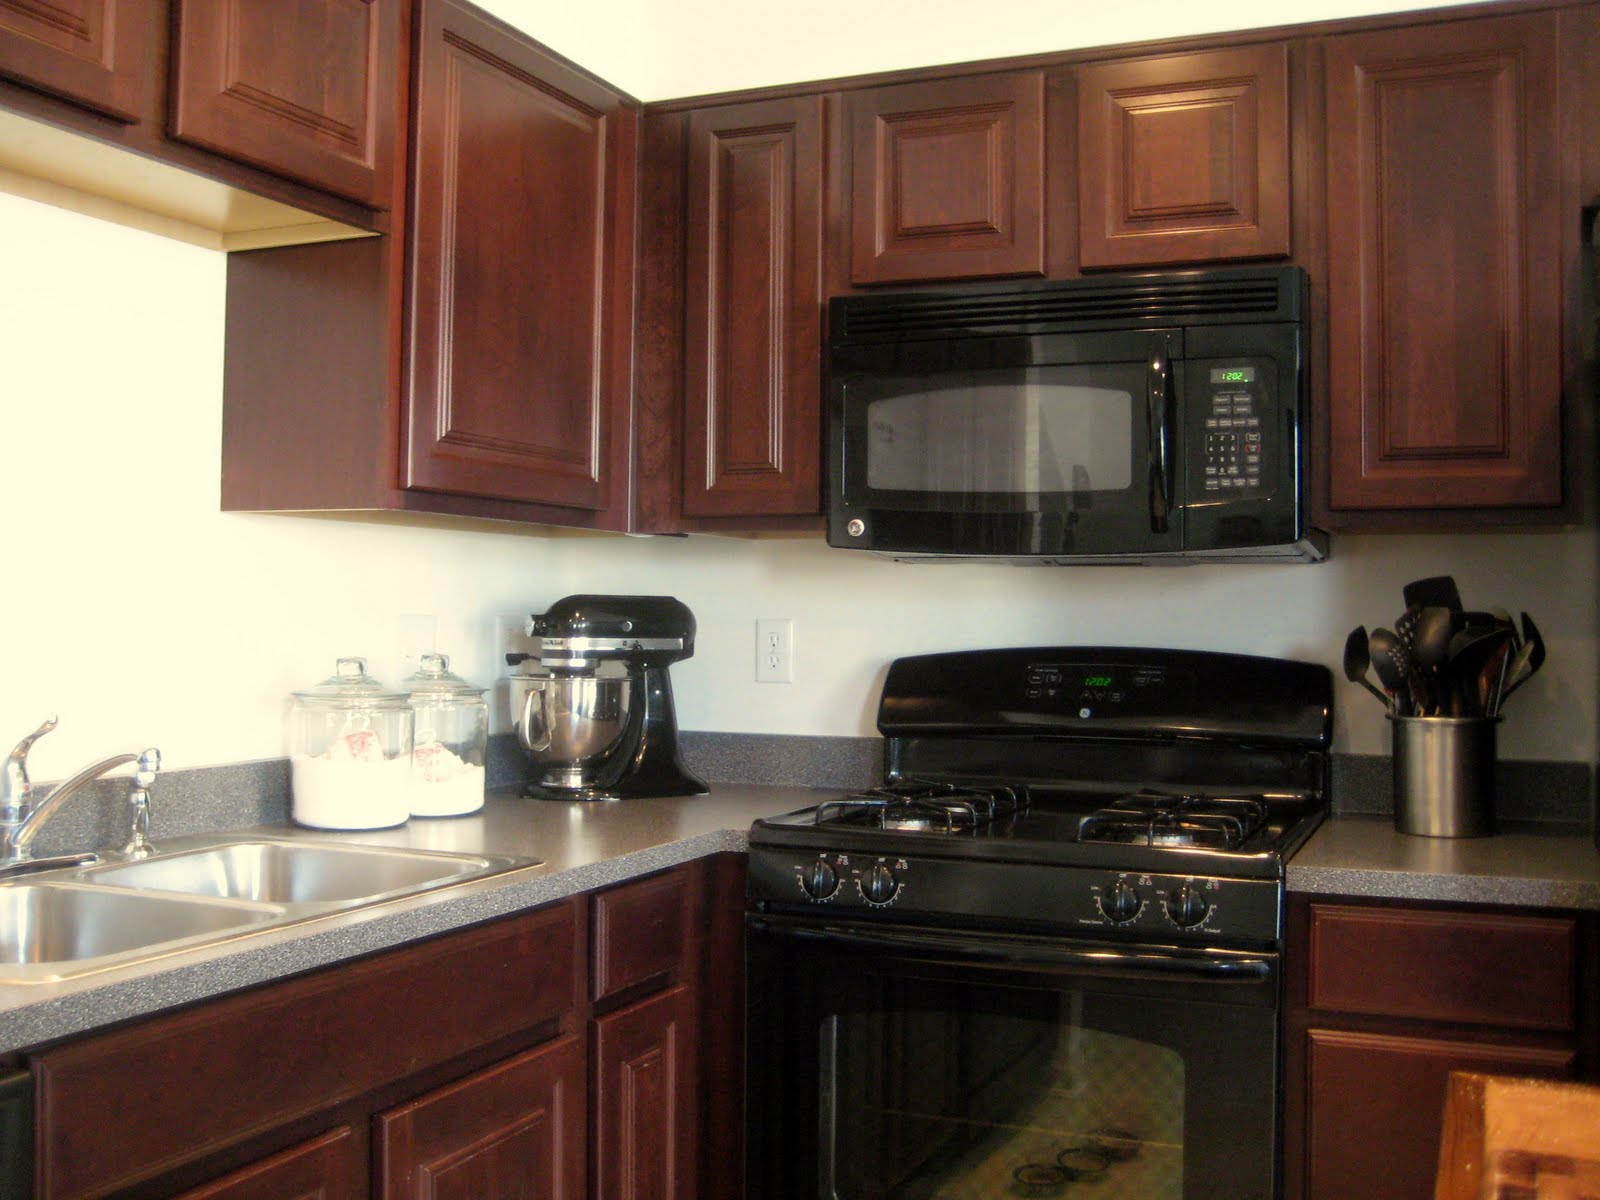 Backsplash goes black cabinets home design inside for Black kitchen backsplash ideas